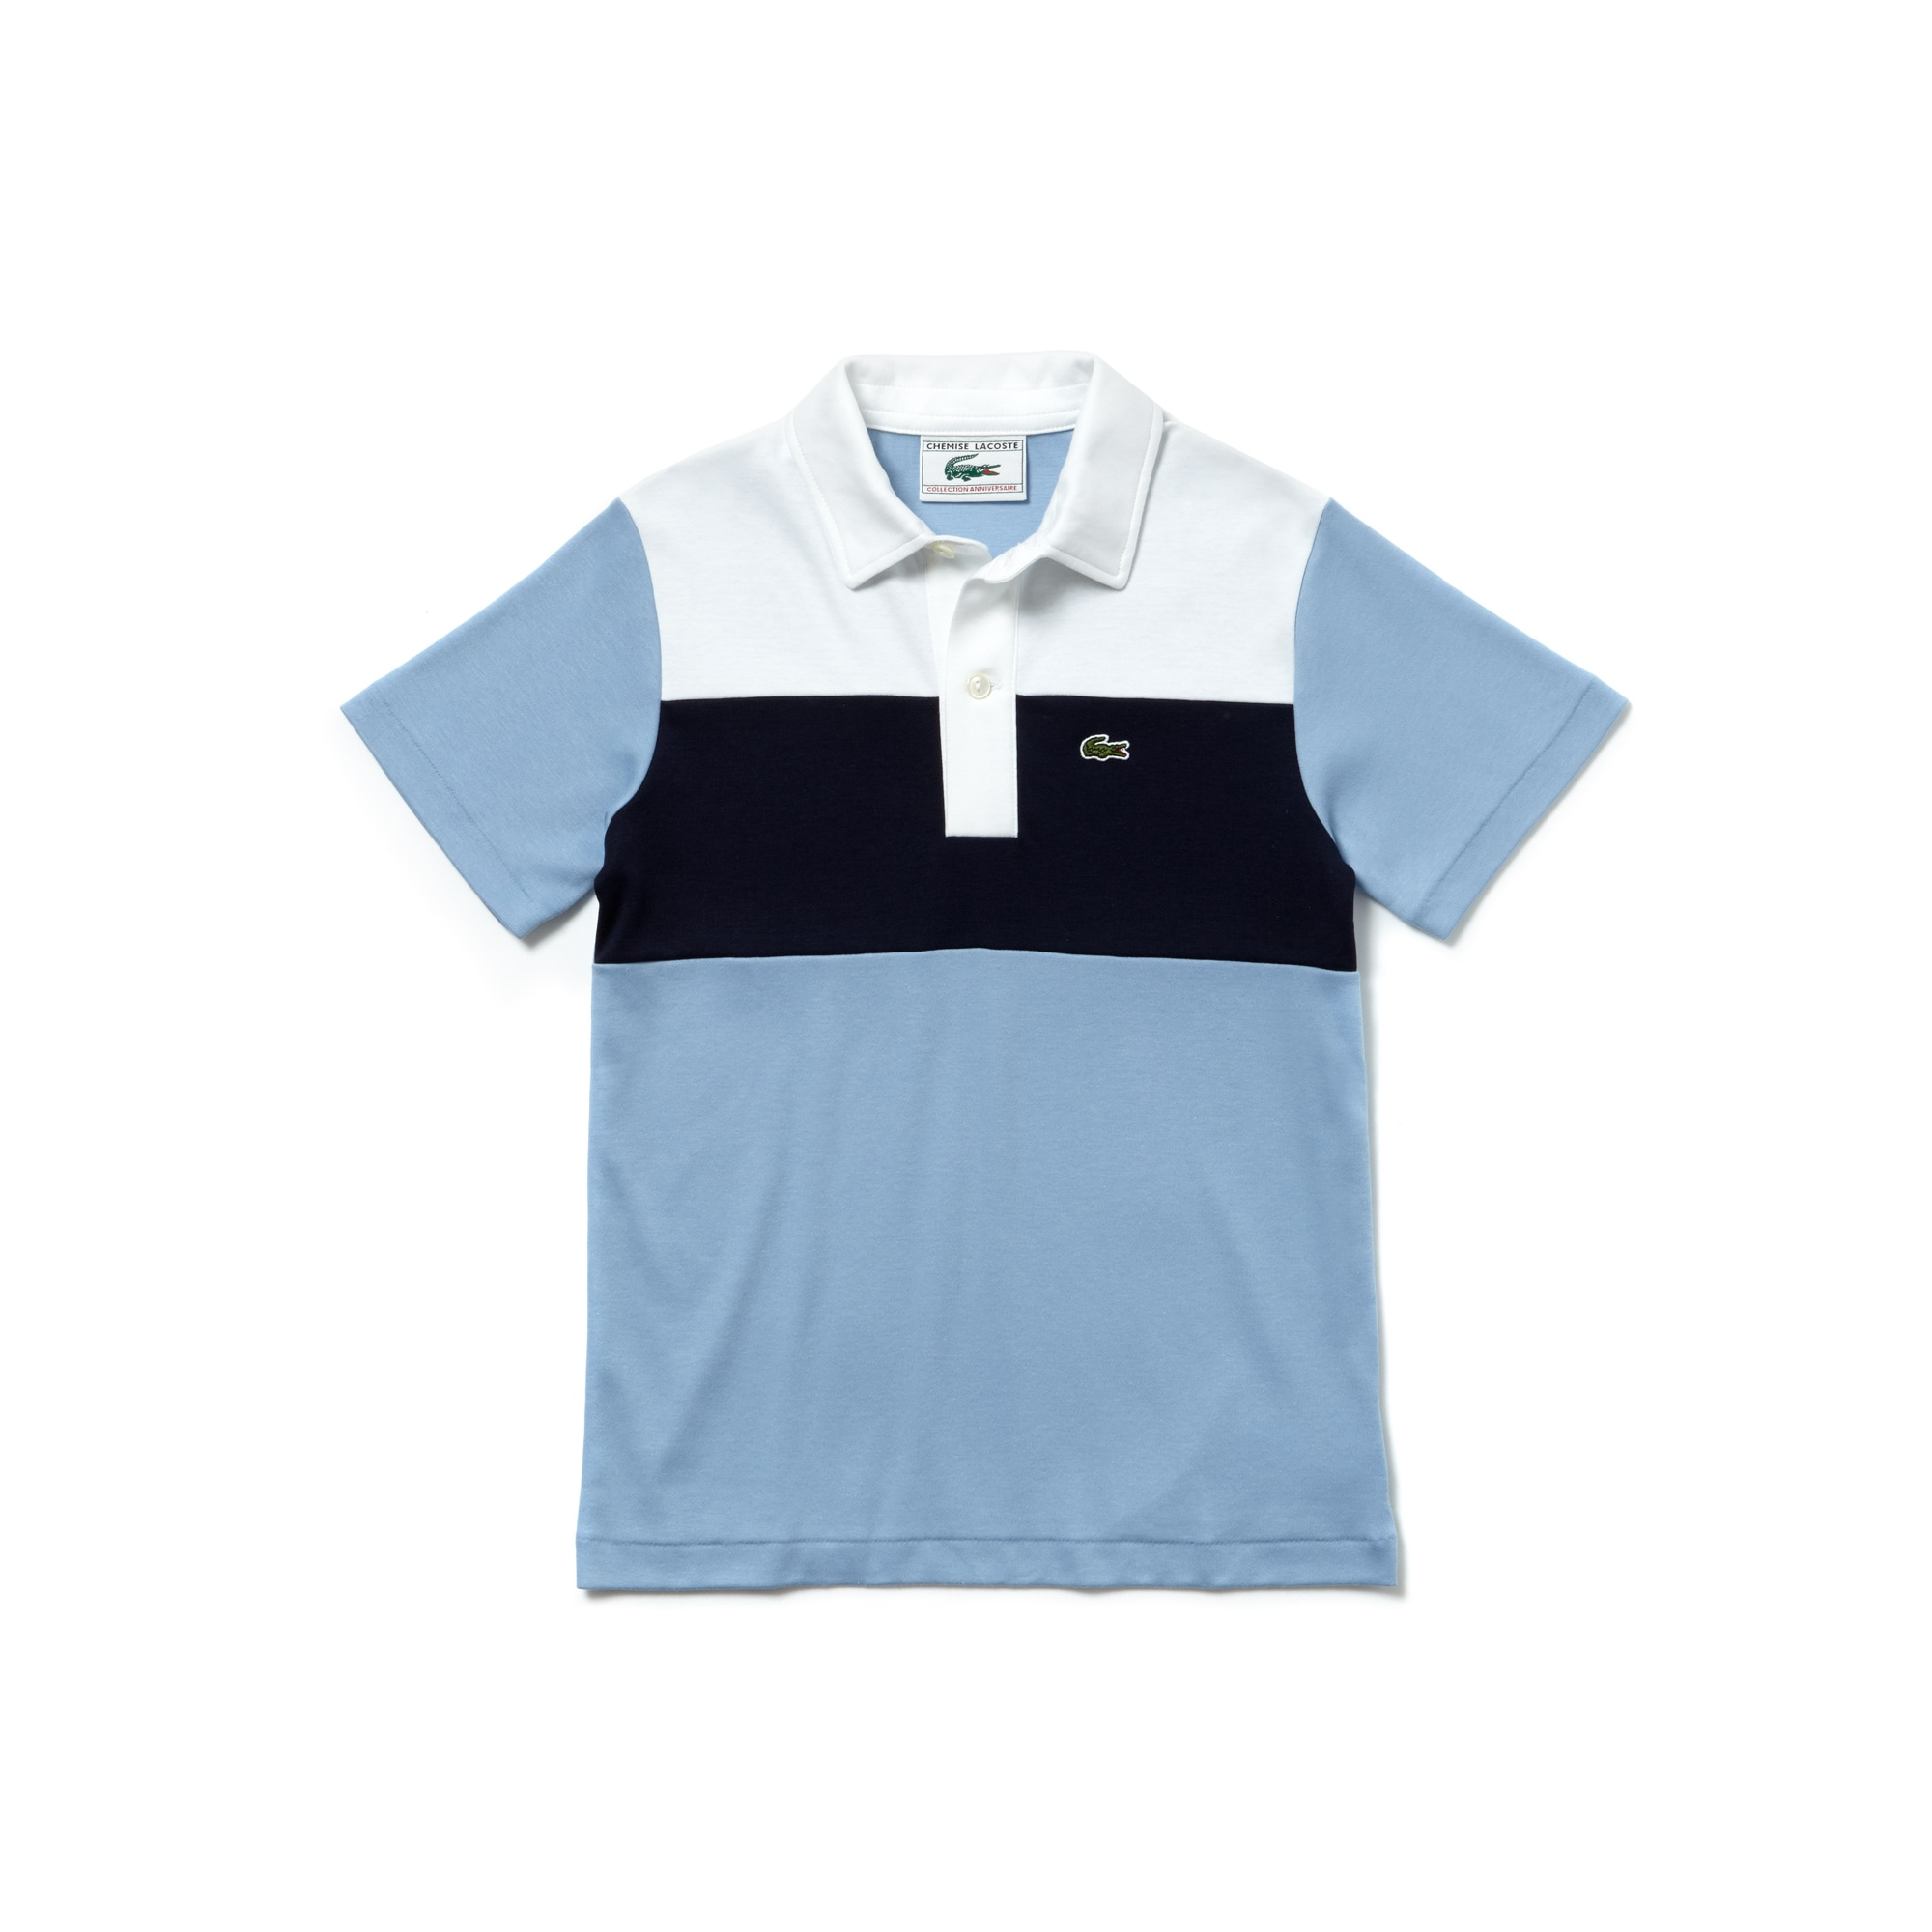 Boys' Lacoste 1970s revival 85th Anniversary Limited Edition Interlock Polo Shirt